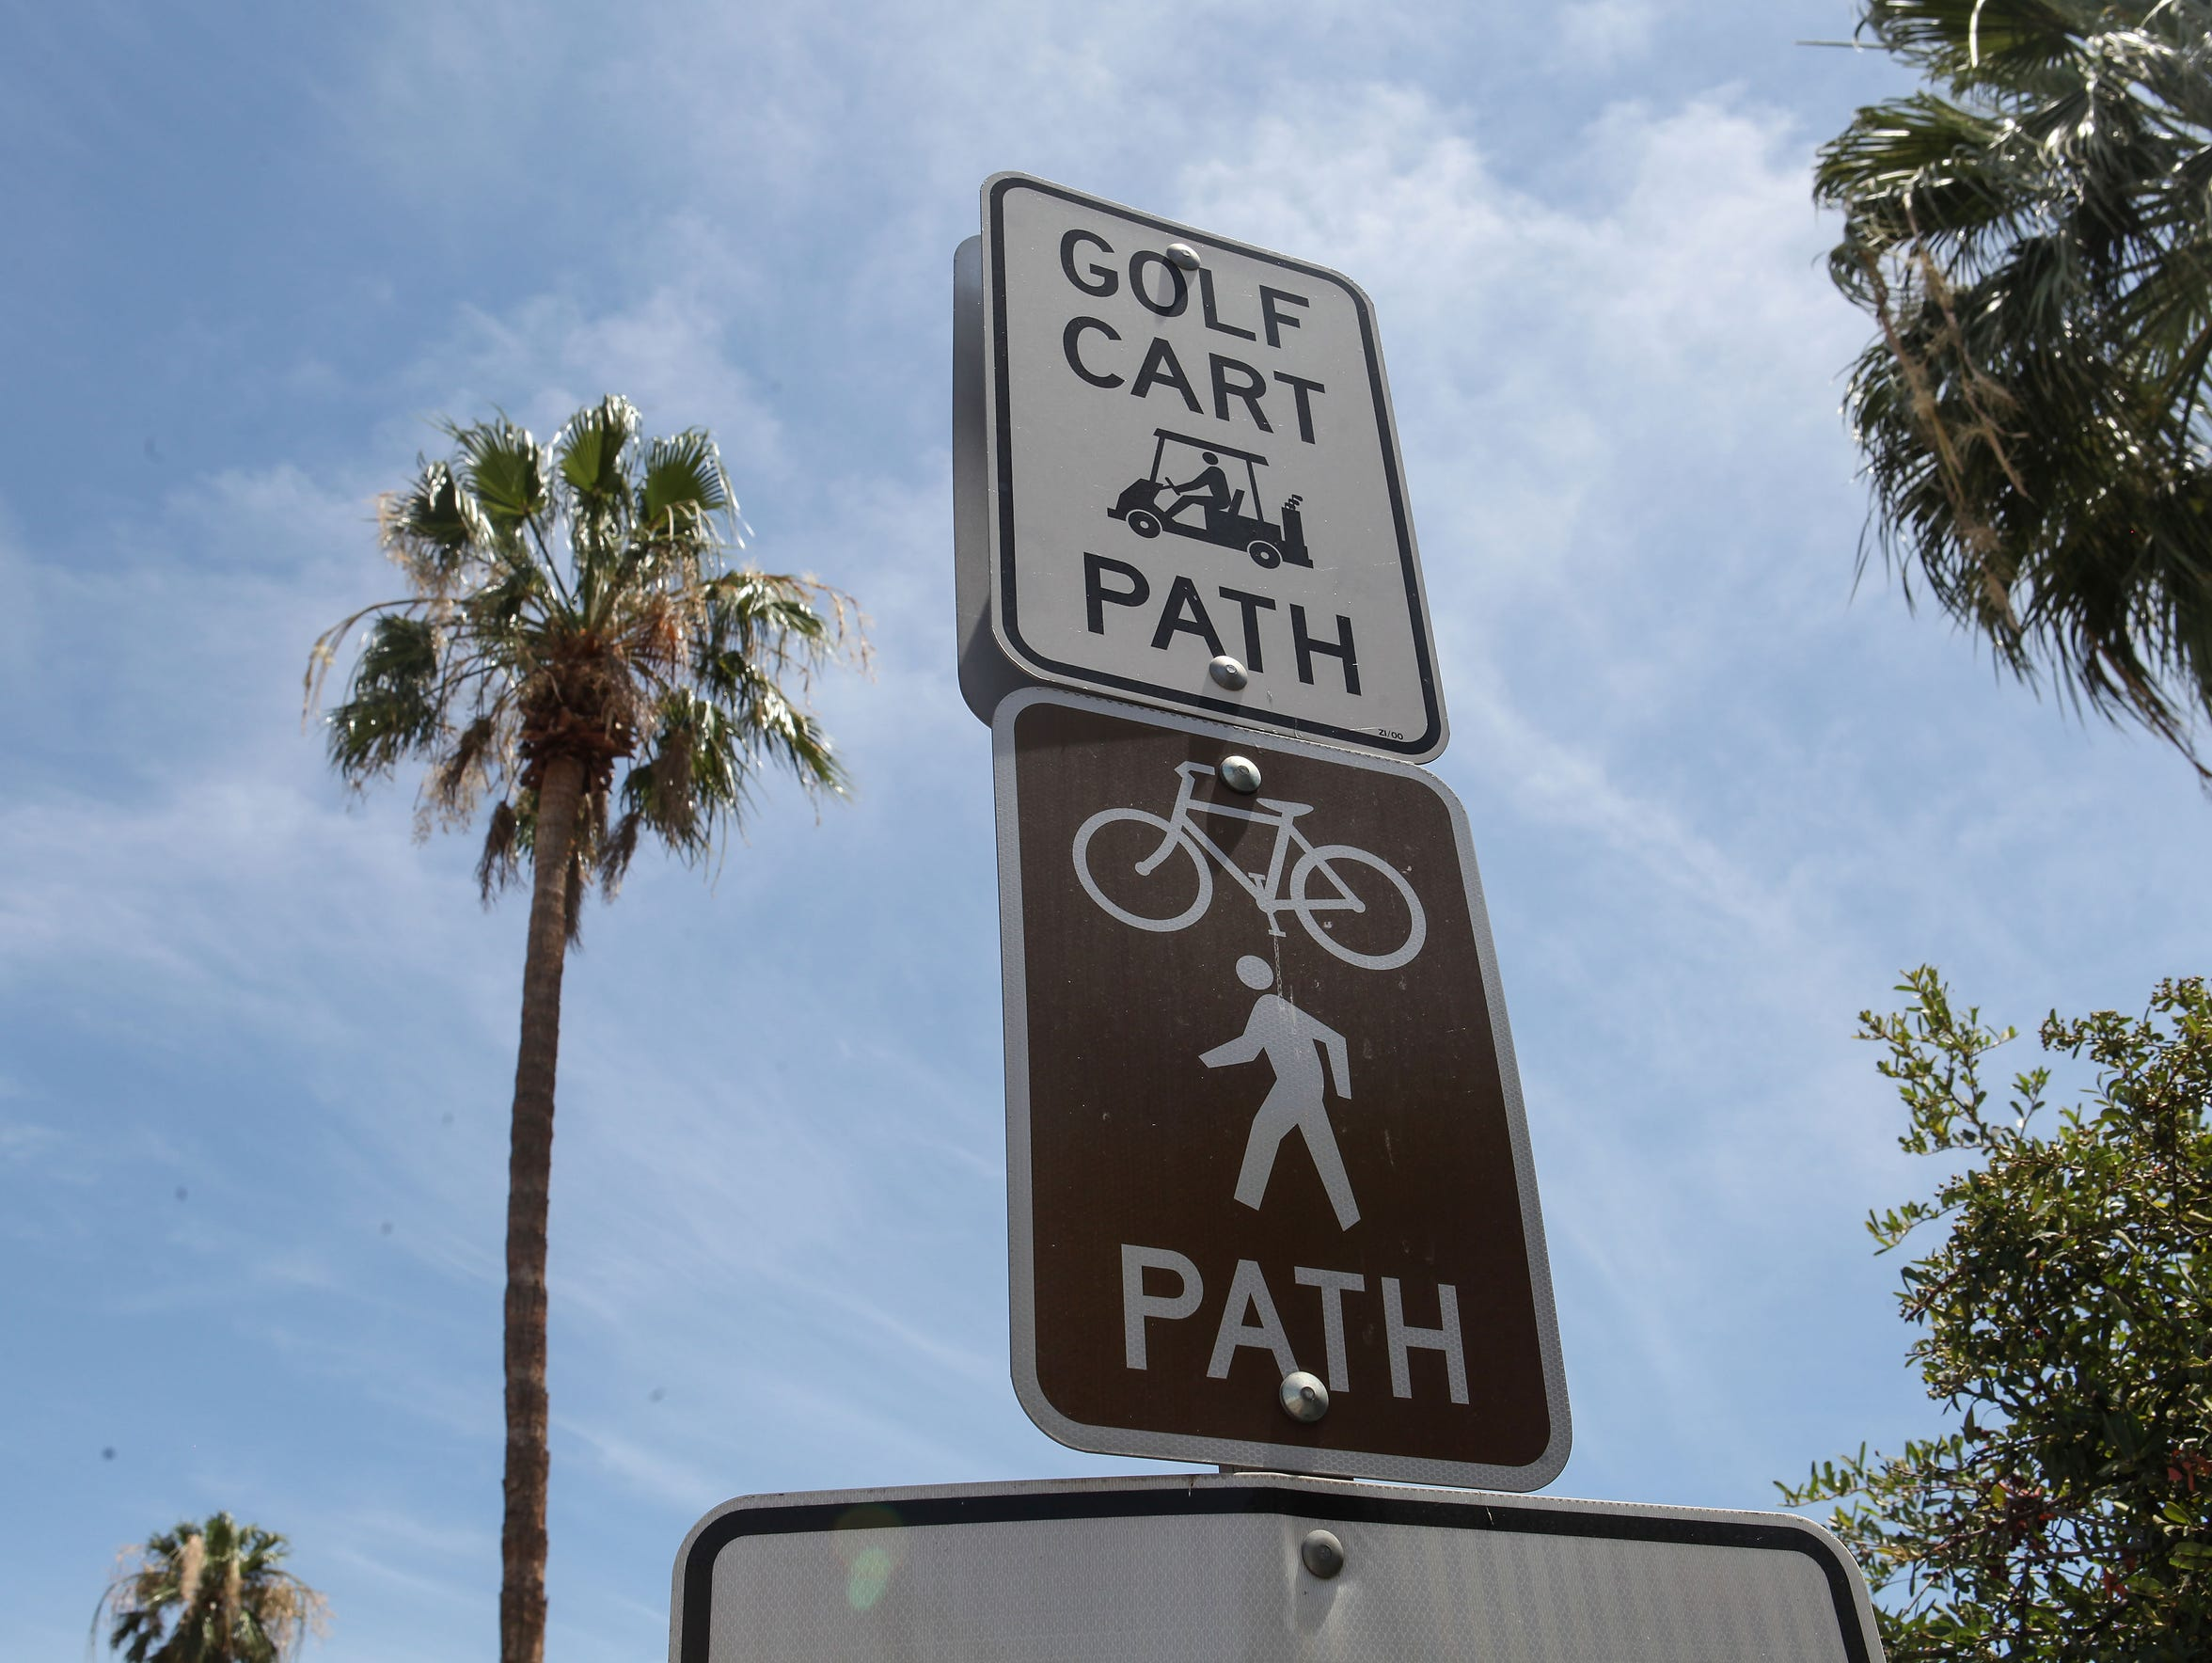 An existing bike path, golf cart path and sidewalk runs along Highway 111 near Country Club Drive in Rancho Mirage.